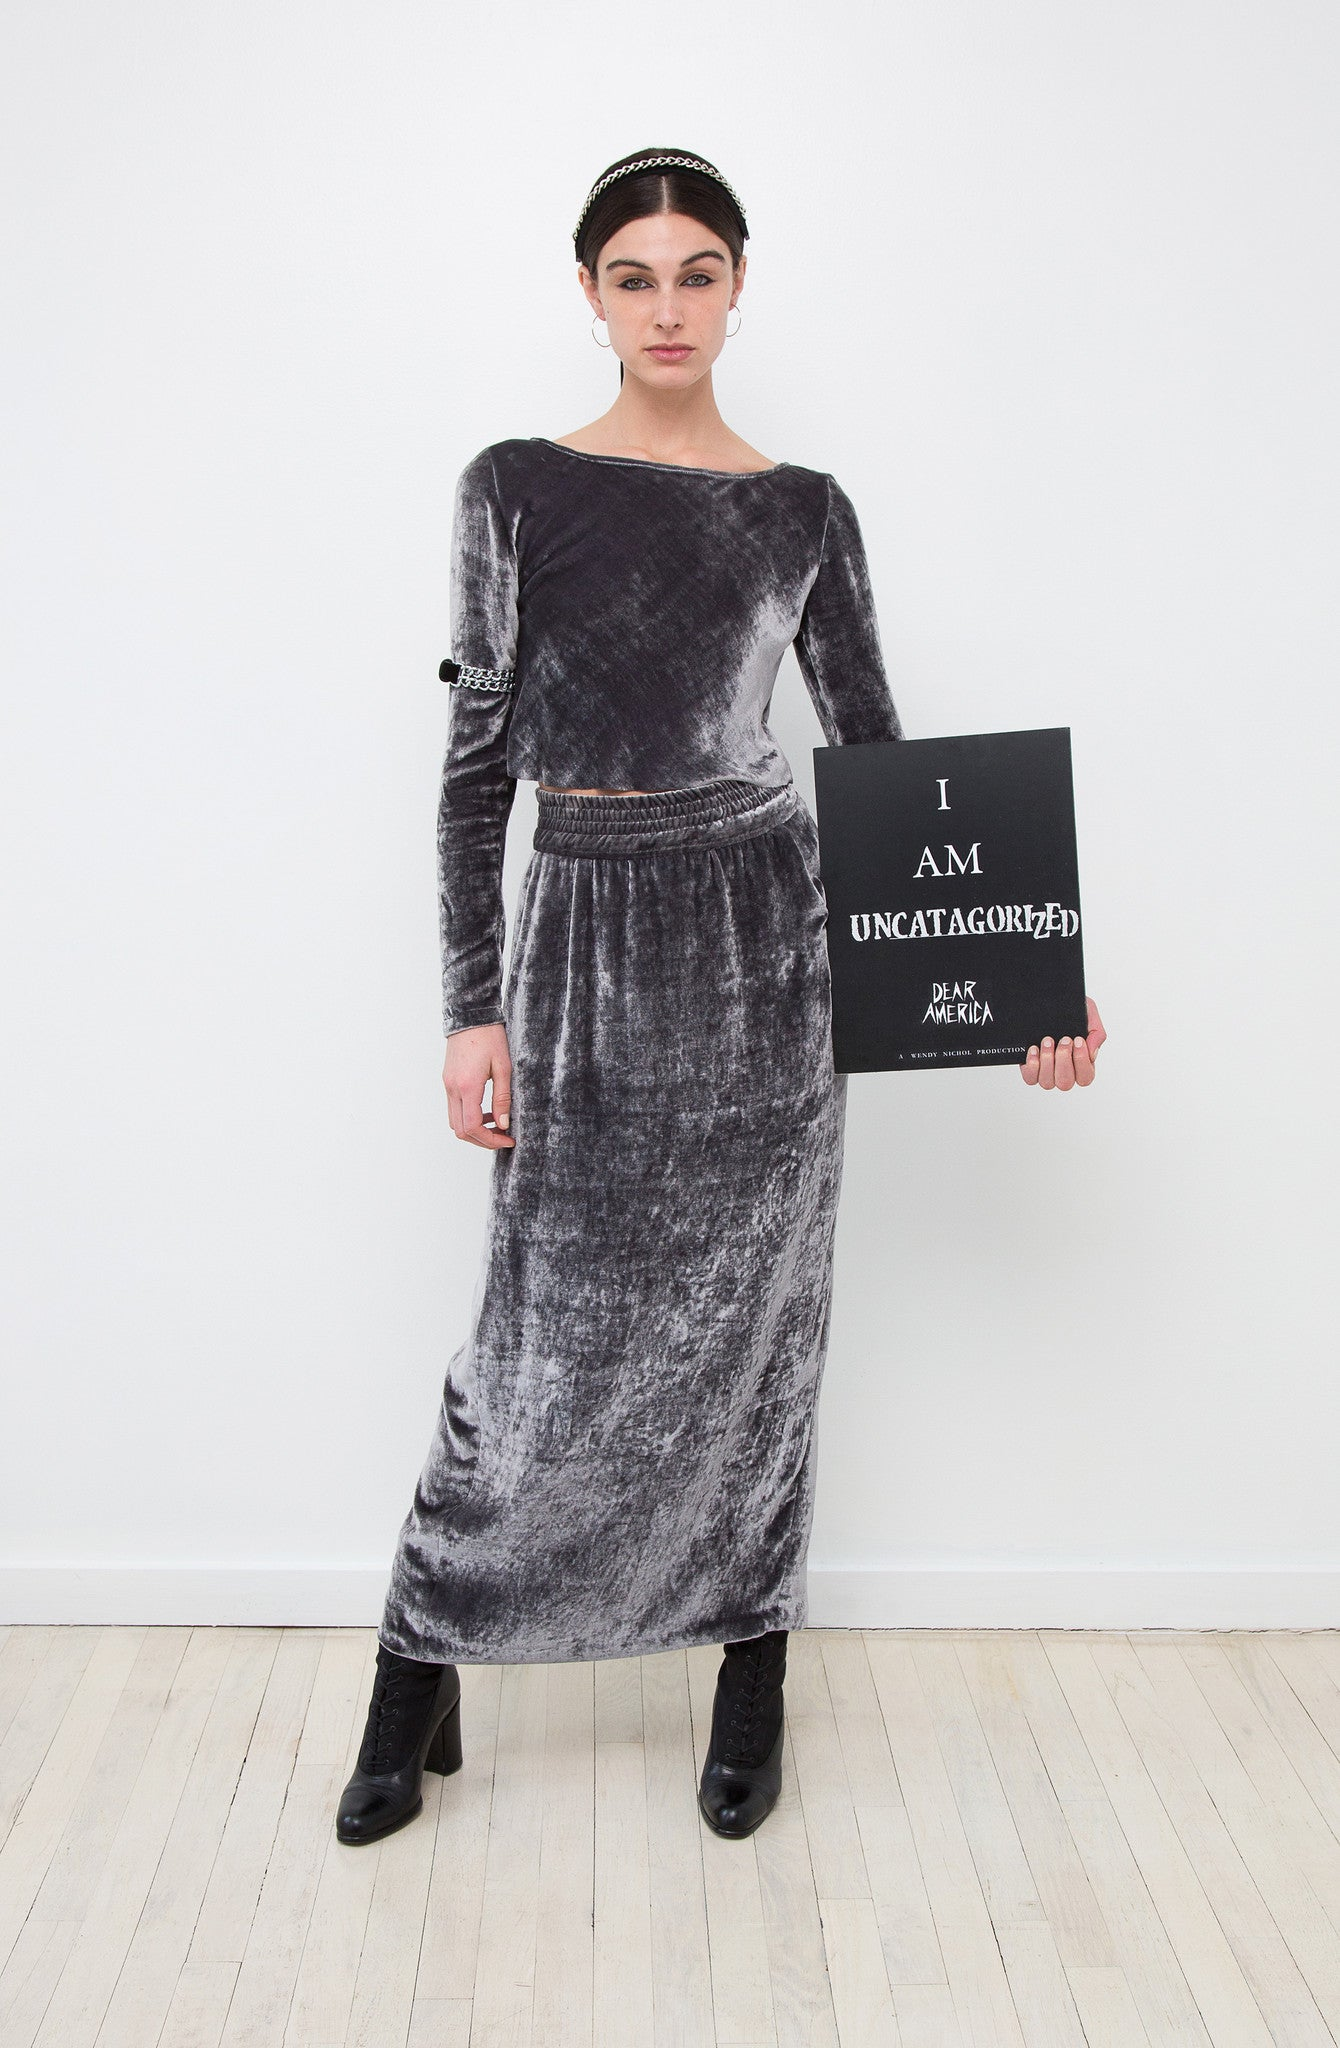 Mariah IMG Model Wendy Nichol AW17 Clothing Fashion Anti Fascist Runway Show Dear America Handmade in NYC Black Silk Velvet Stone Gray Skirt Long Sleeve Cropped Top Protest I AM